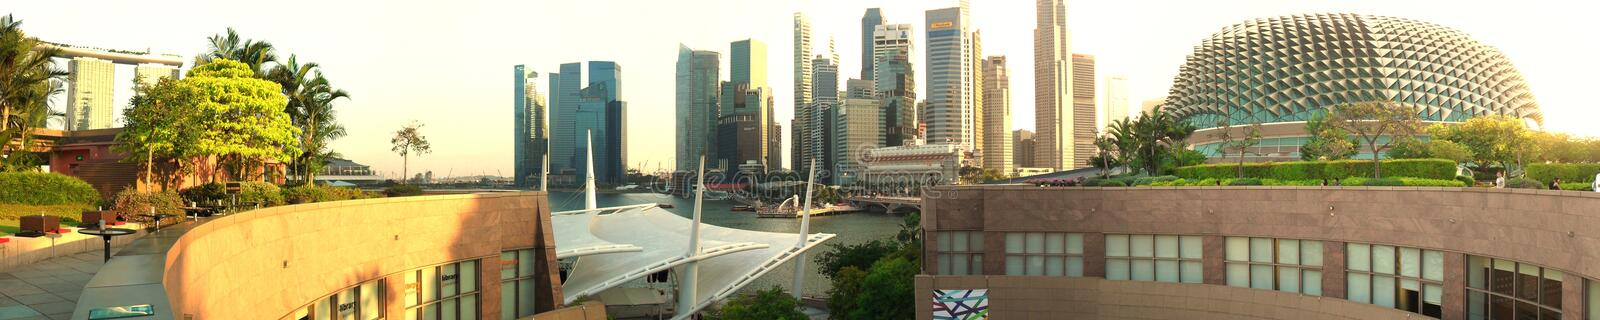 Singapore skyline at sunset - a view from rooftop. Singapore City Skyline at Sunset Panorama. Shot taken from a rooftop bar stock images